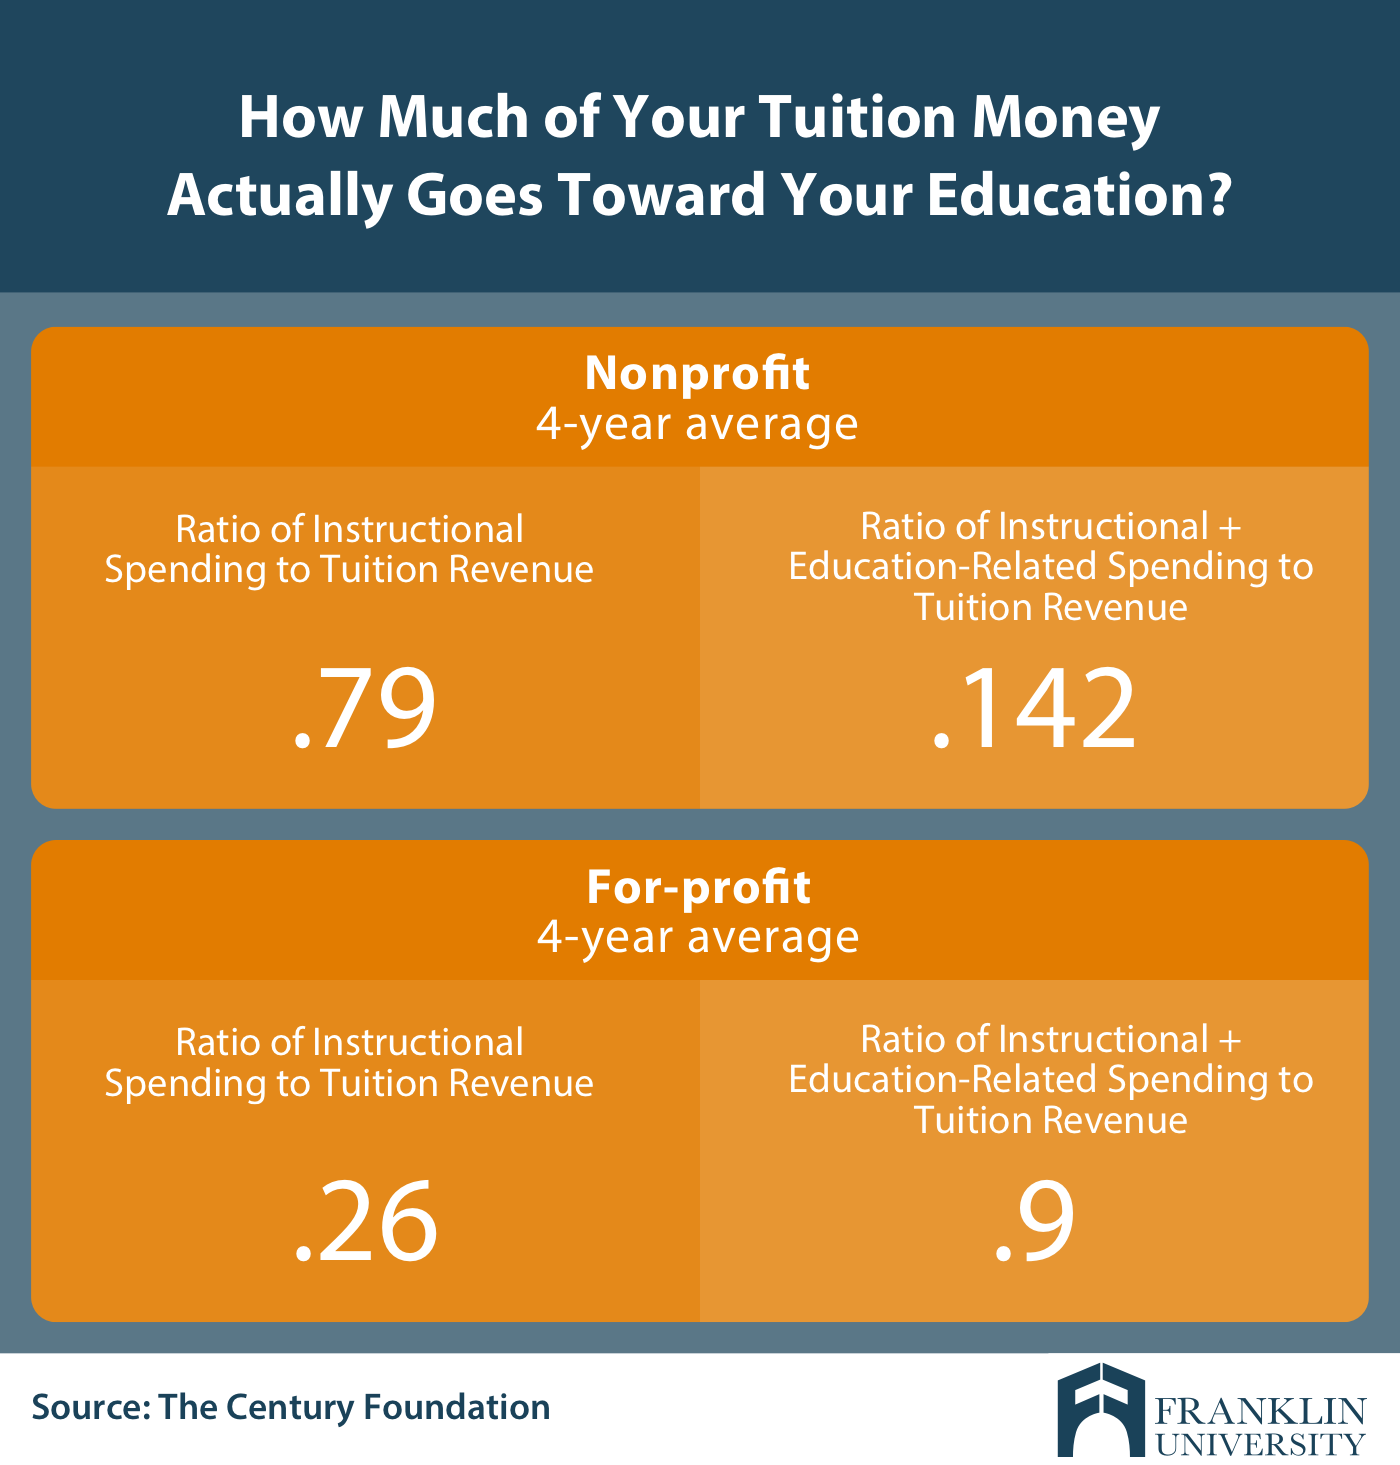 Graphic showing how much tuition dollars for profit colleges and nonprofit colleges spend on education